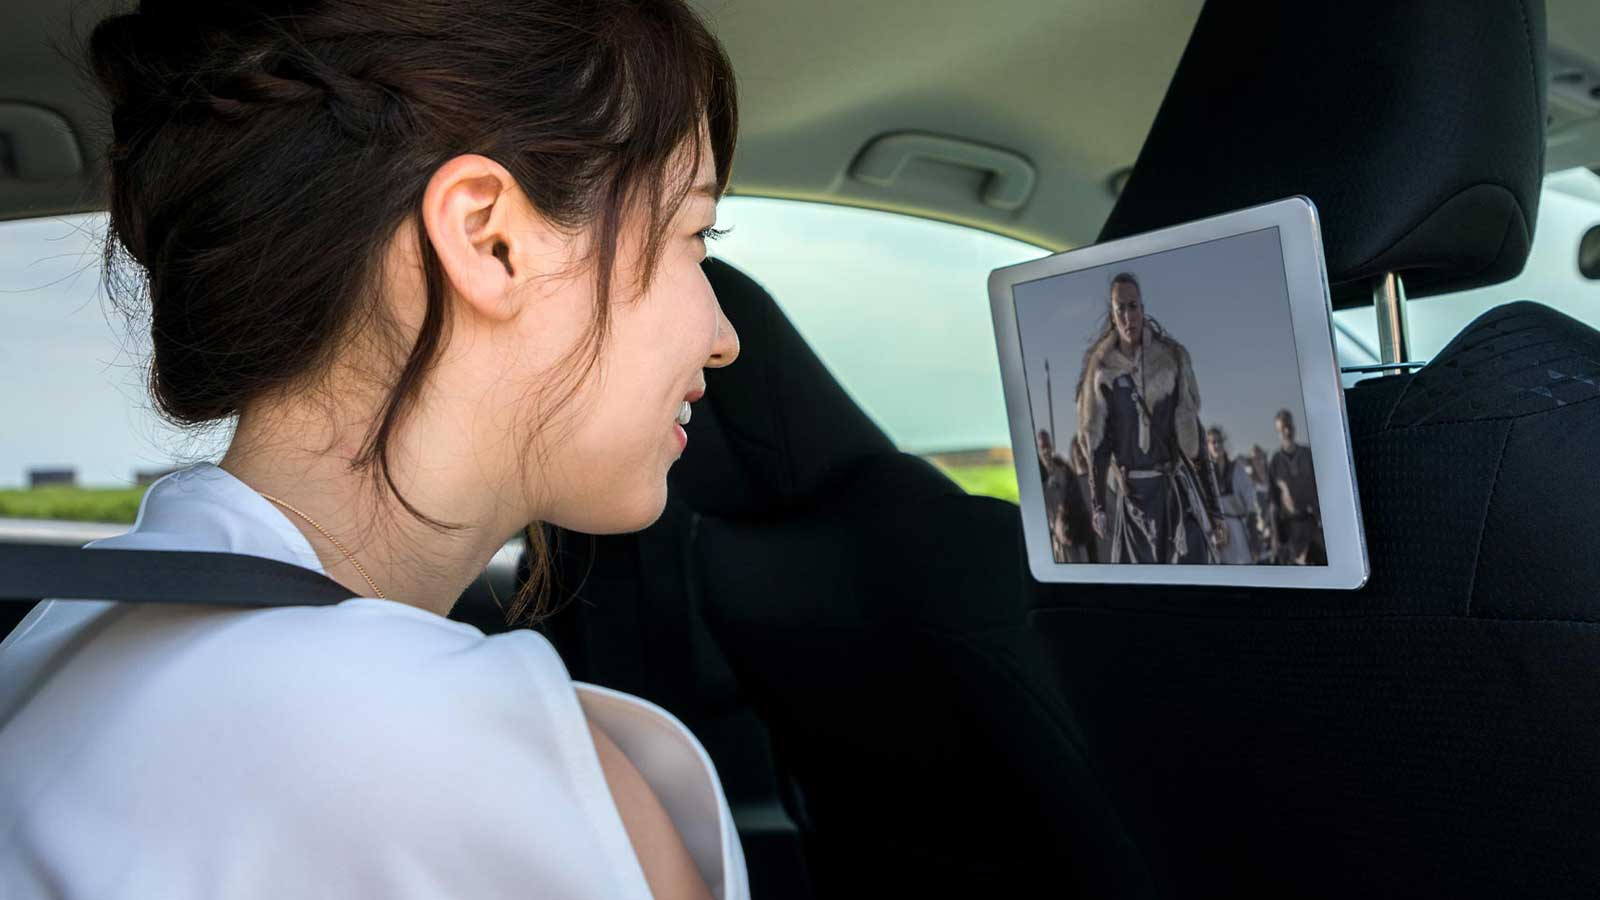 Woman watching video in vehicle entertainment system